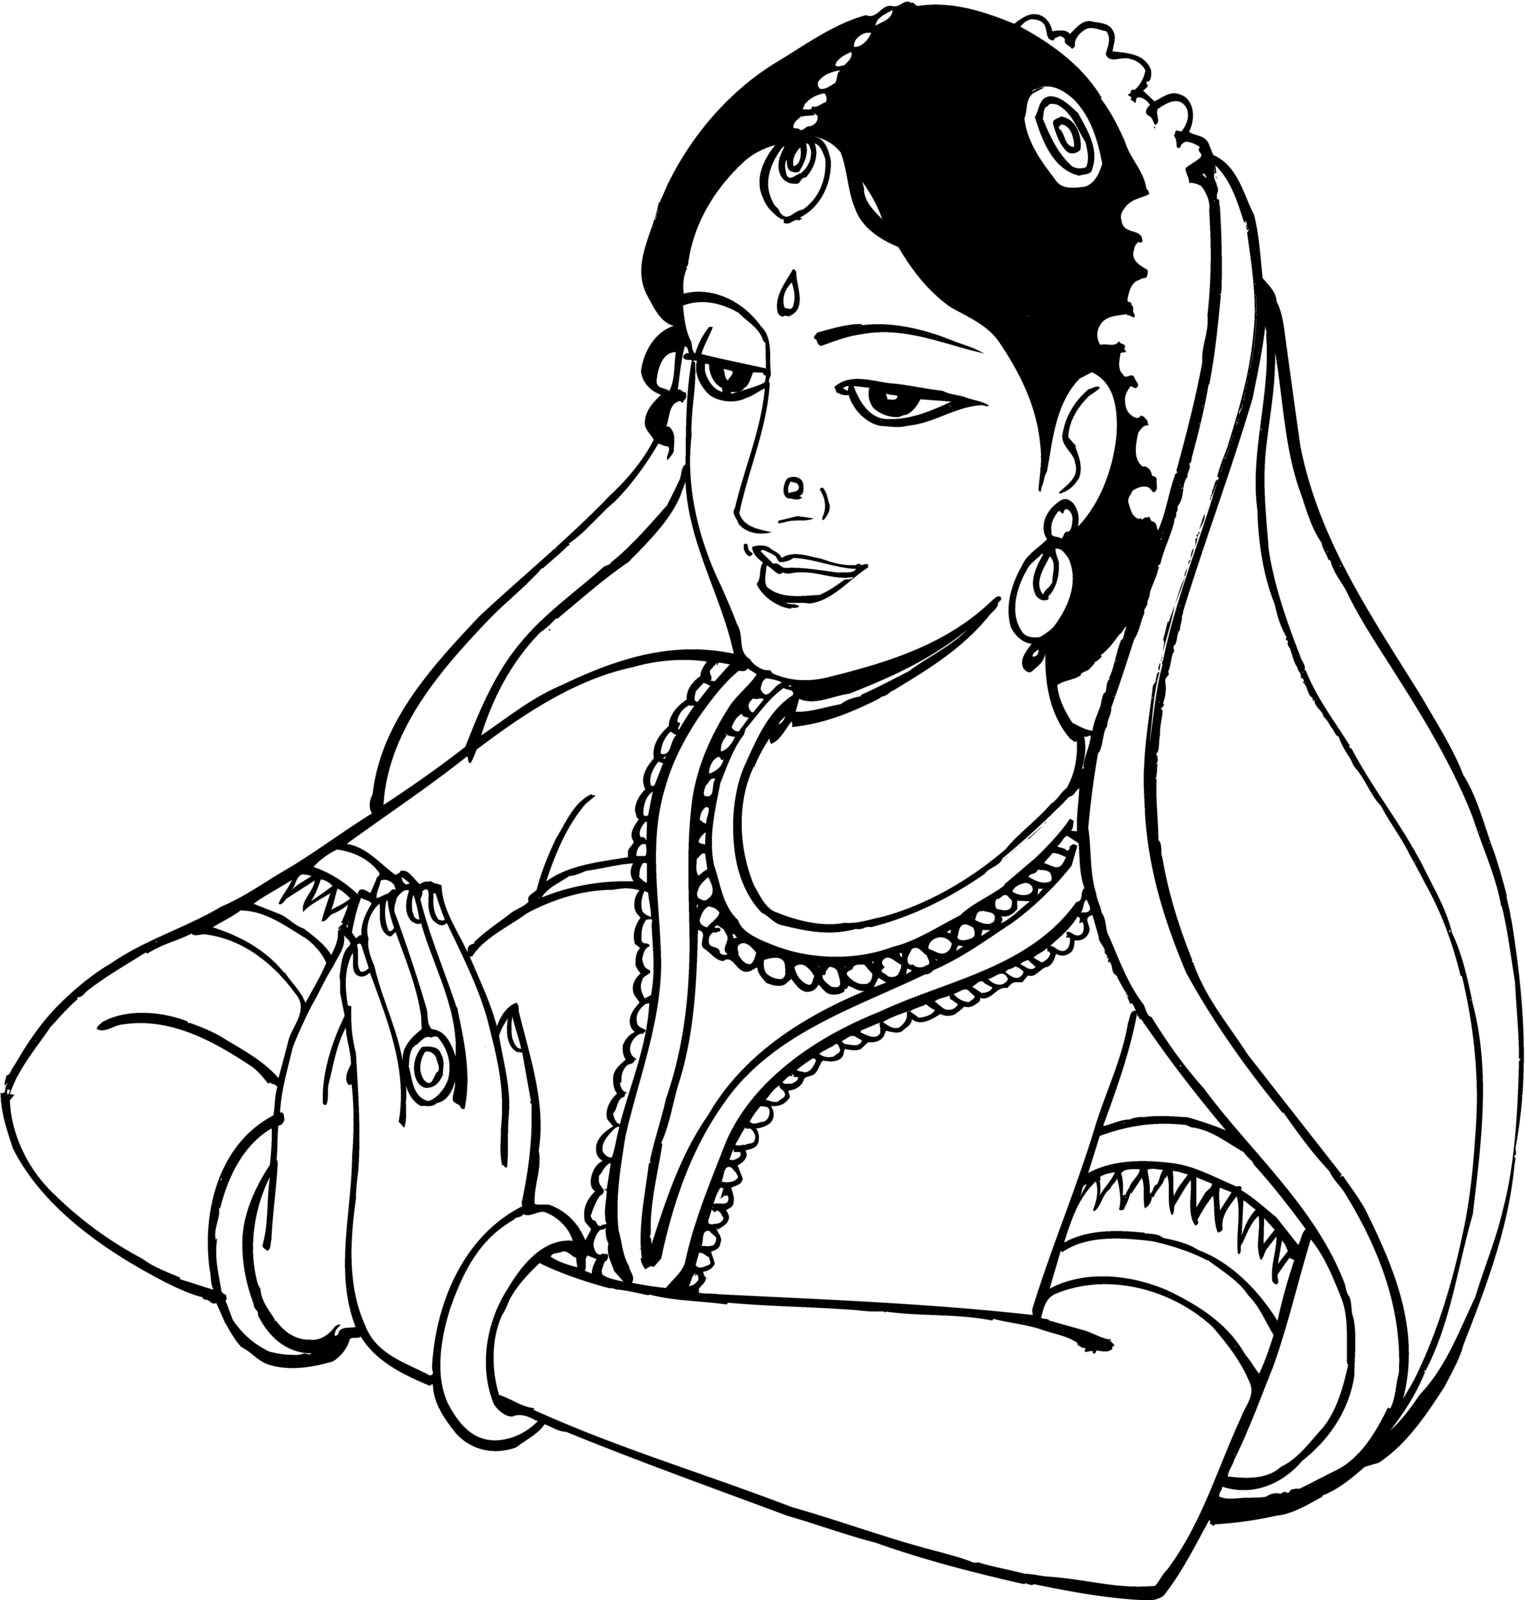 Hindu marriage clipart free download 7 » Clipart Station.